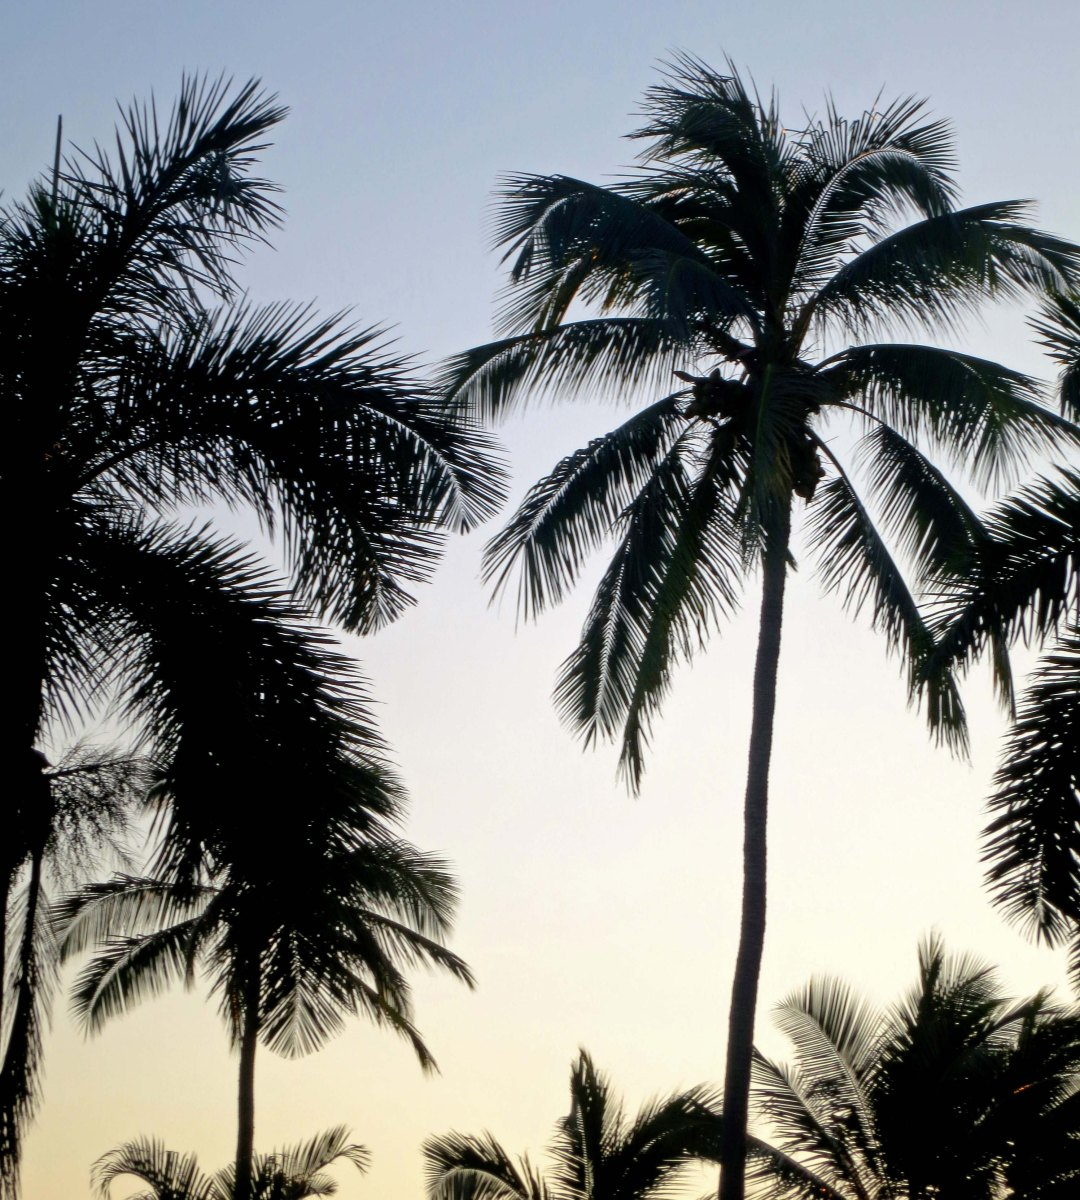 12 palms at sunset in puerto vallarta wandering through time and place